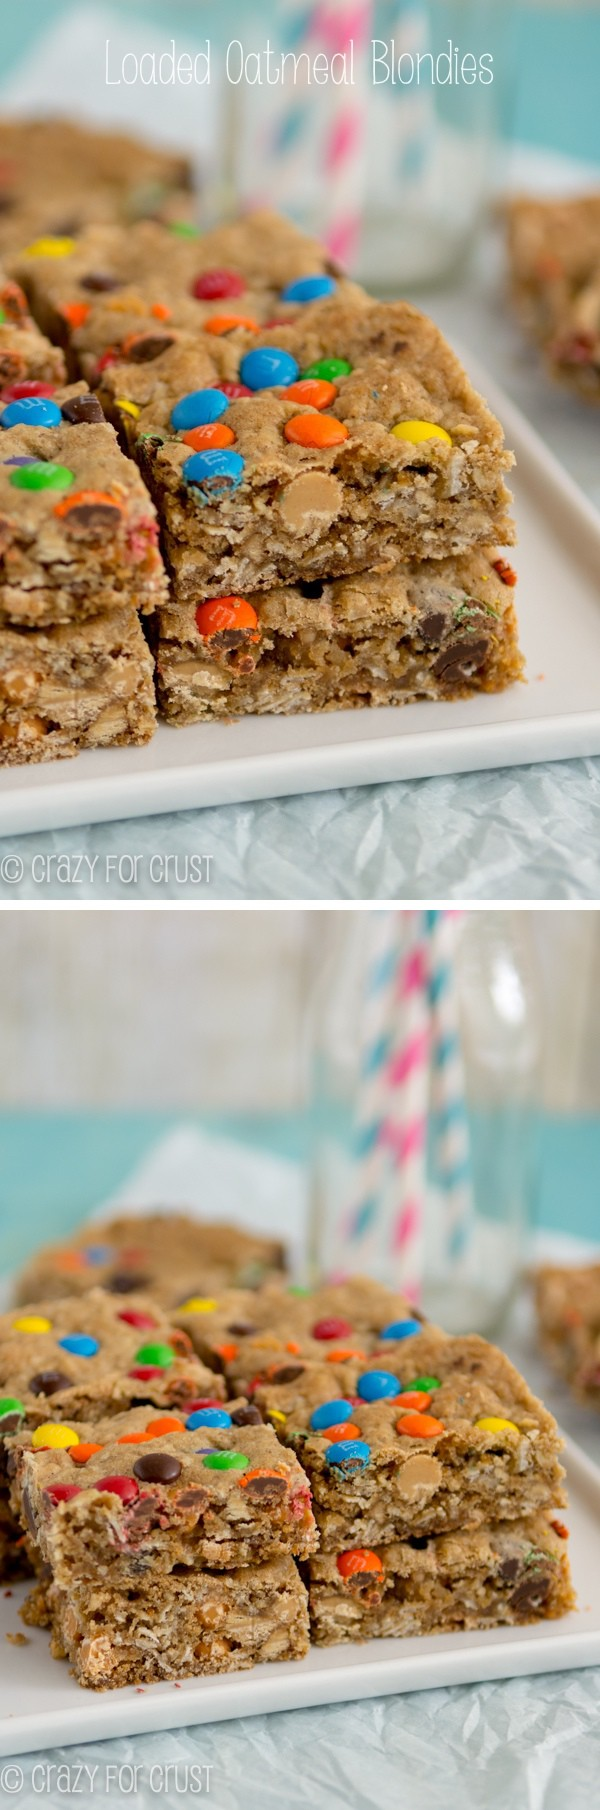 Loaded Oatmeal Blondies recipe collage